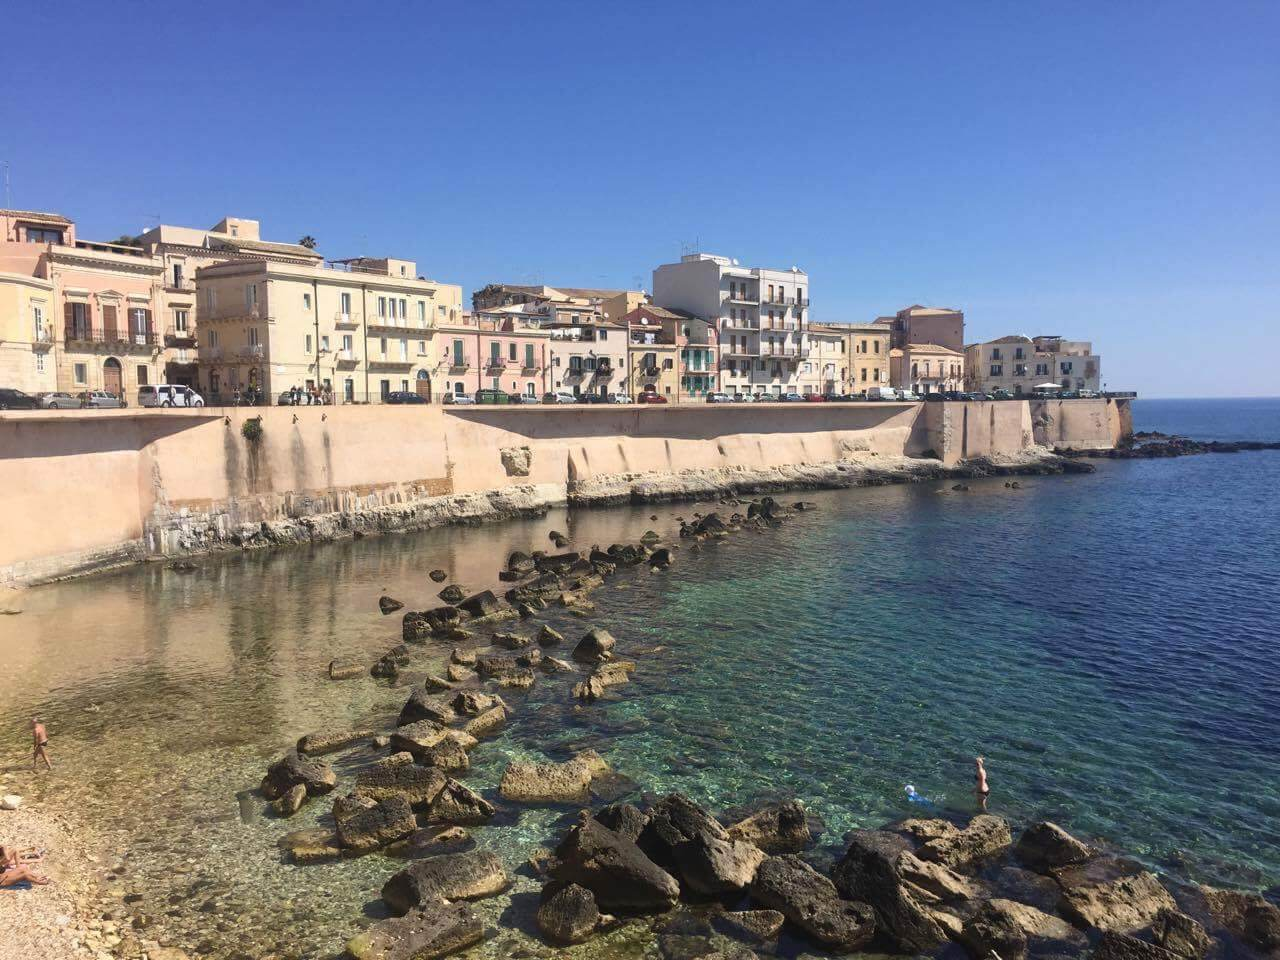 Ortigia, Syracuse in Italy is one of the best places to go for clear, relaxing blue waters.